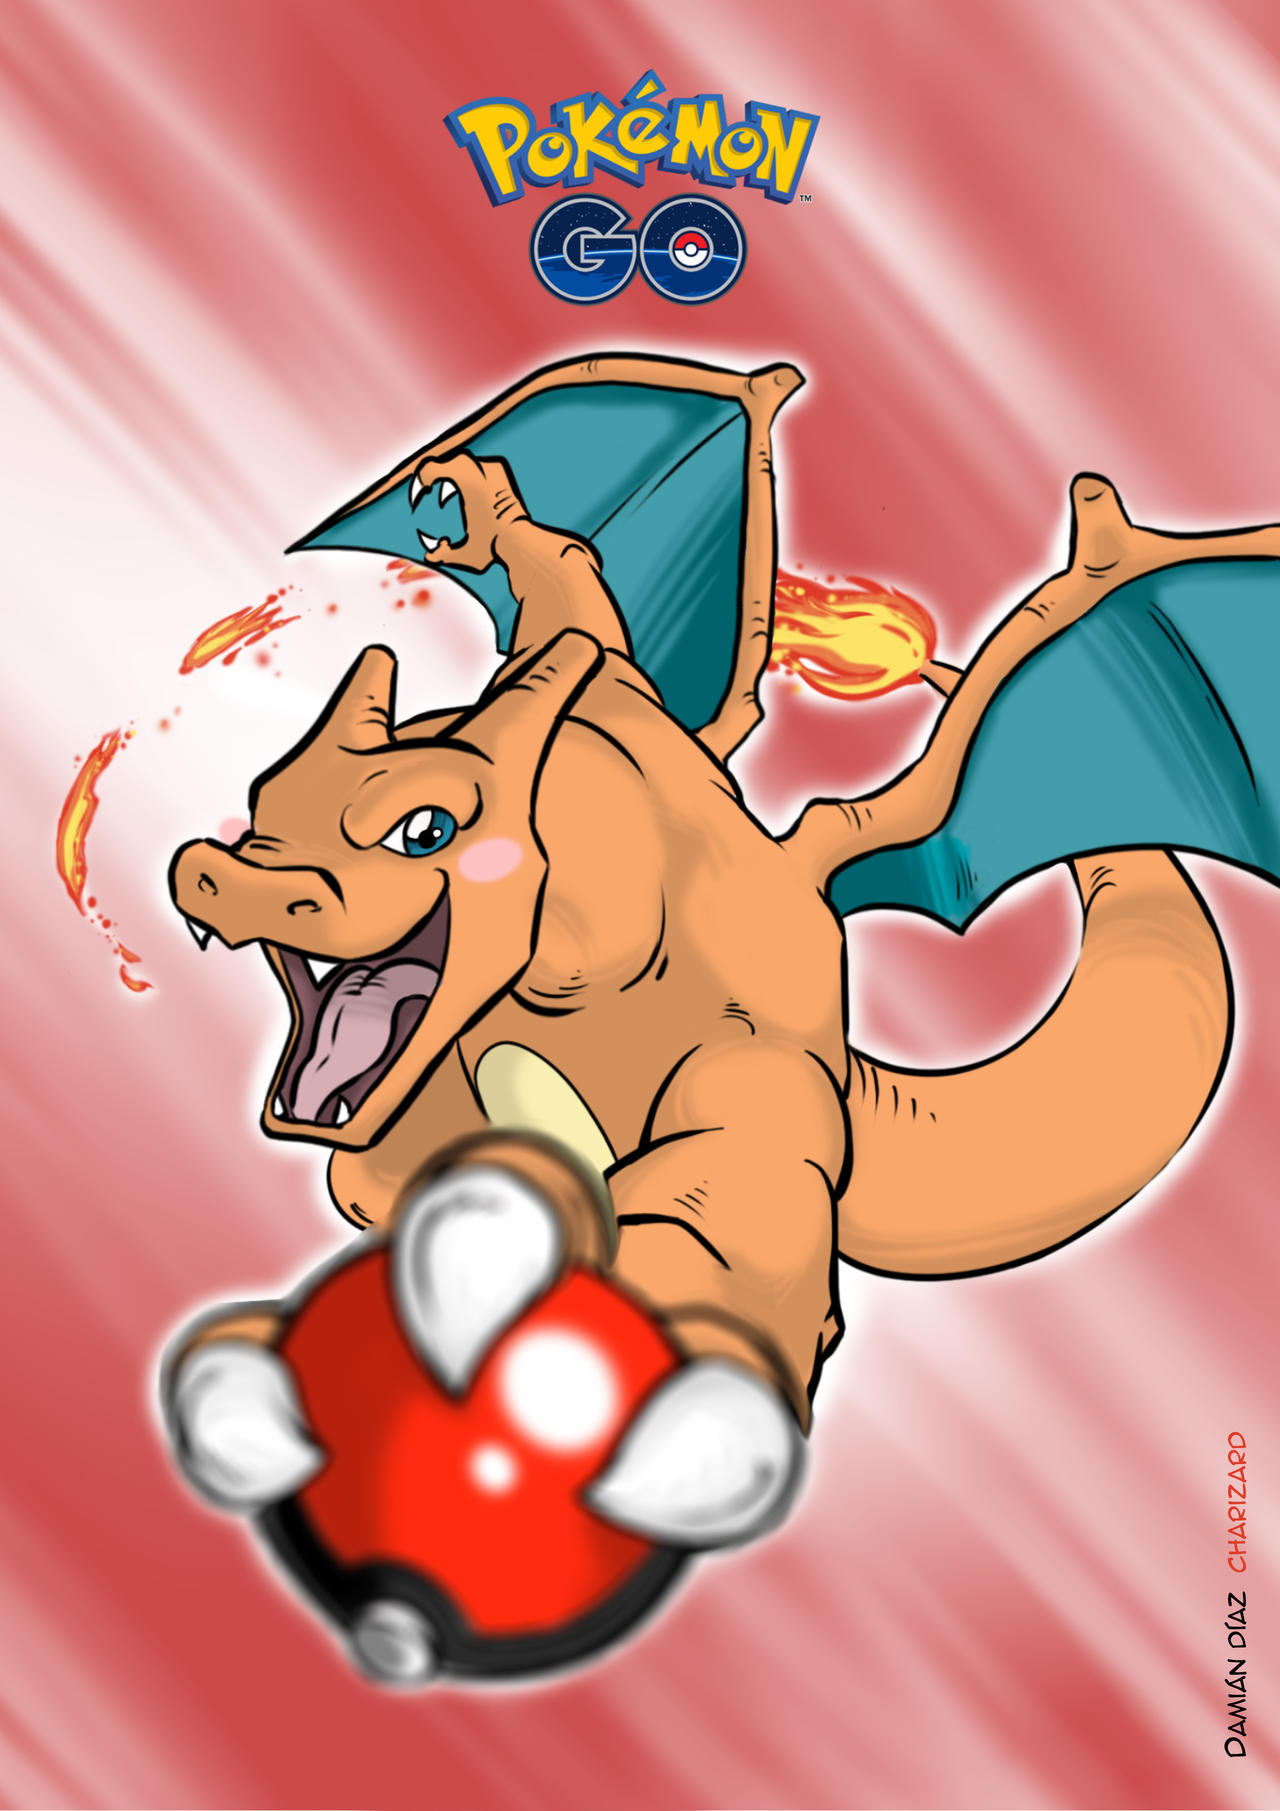 Charizard Poster Free Download Full Size By Damian Diaz On Deviantart